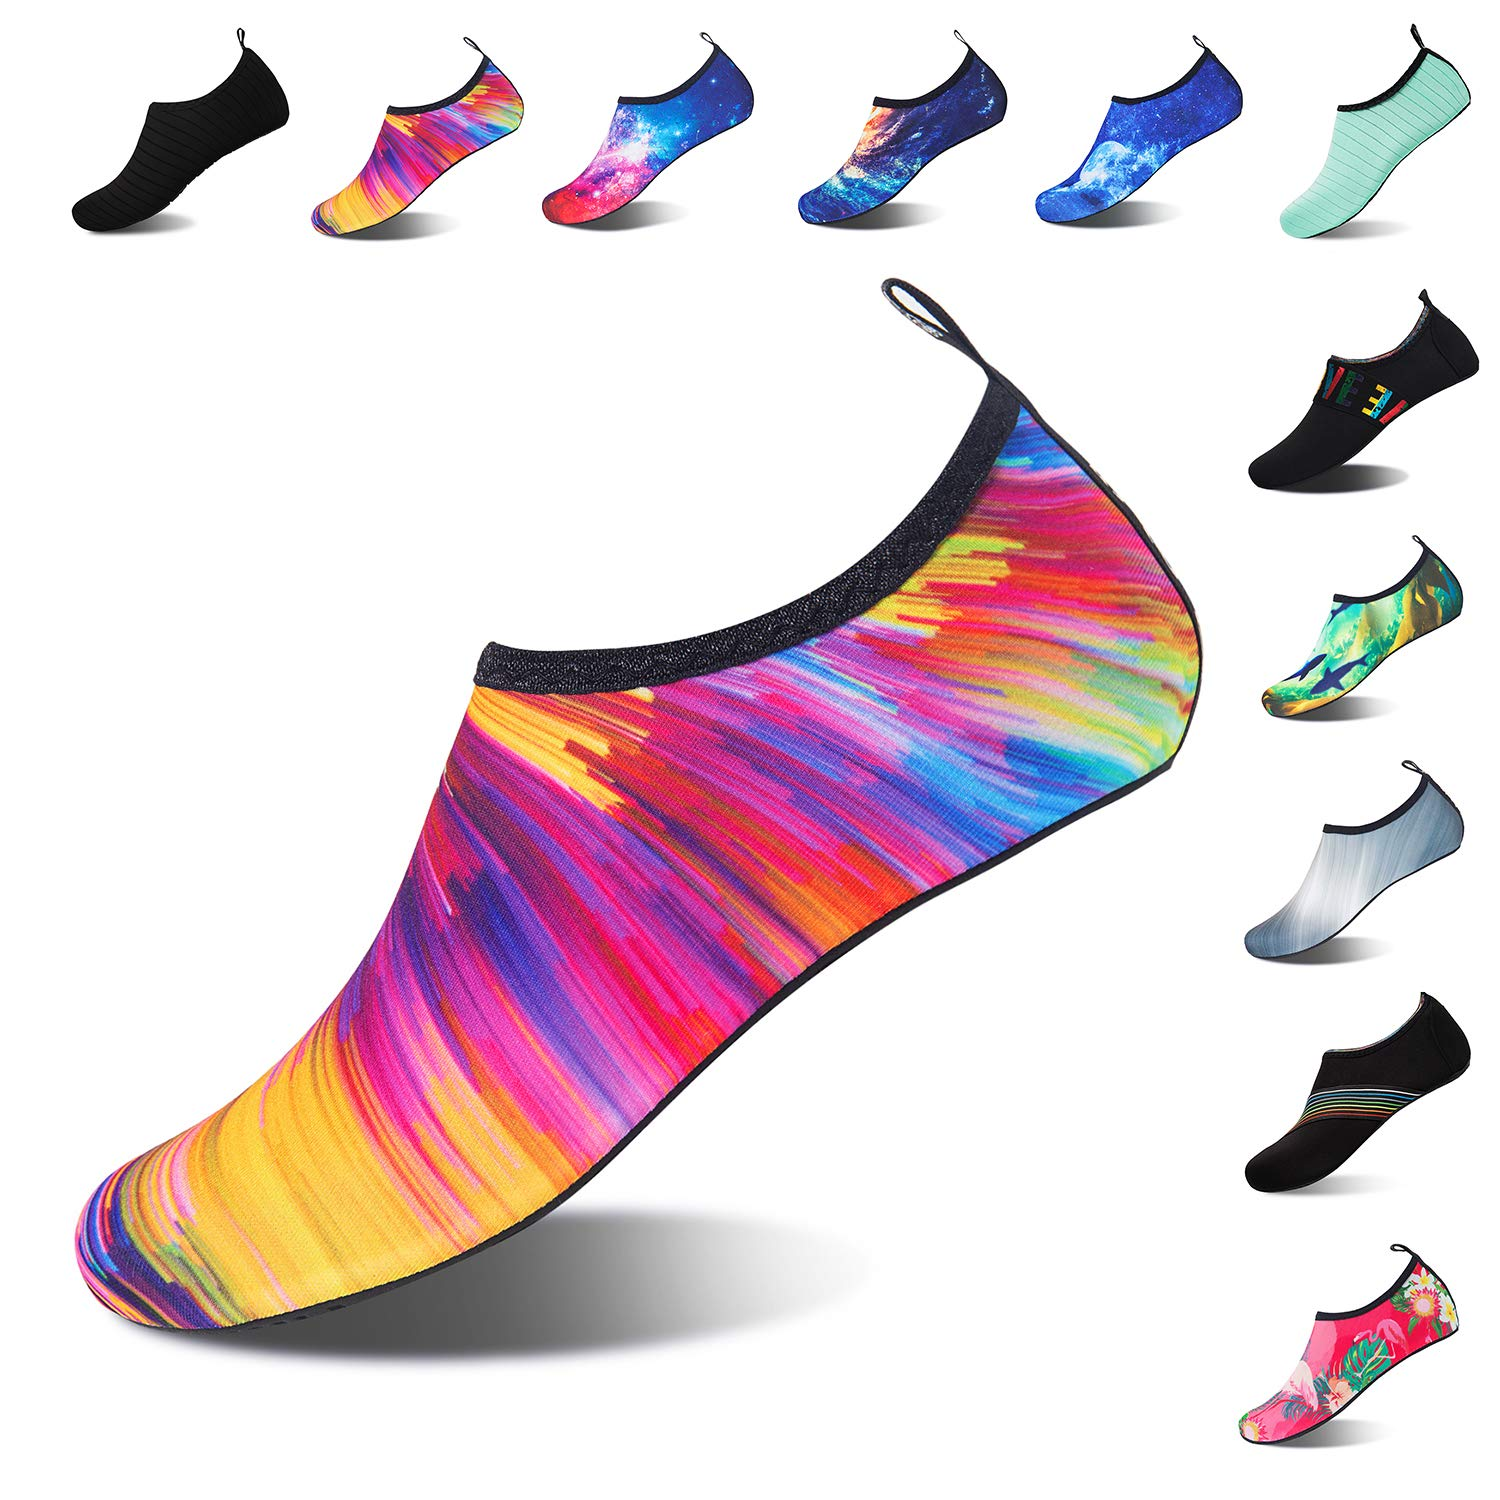 Mens Womens Water Shoes Barefoot Beach Pool Shoes Quick-Dry Aqua Yoga Socks for Surf Swim Water Sport (Colorful, 40/41EU)